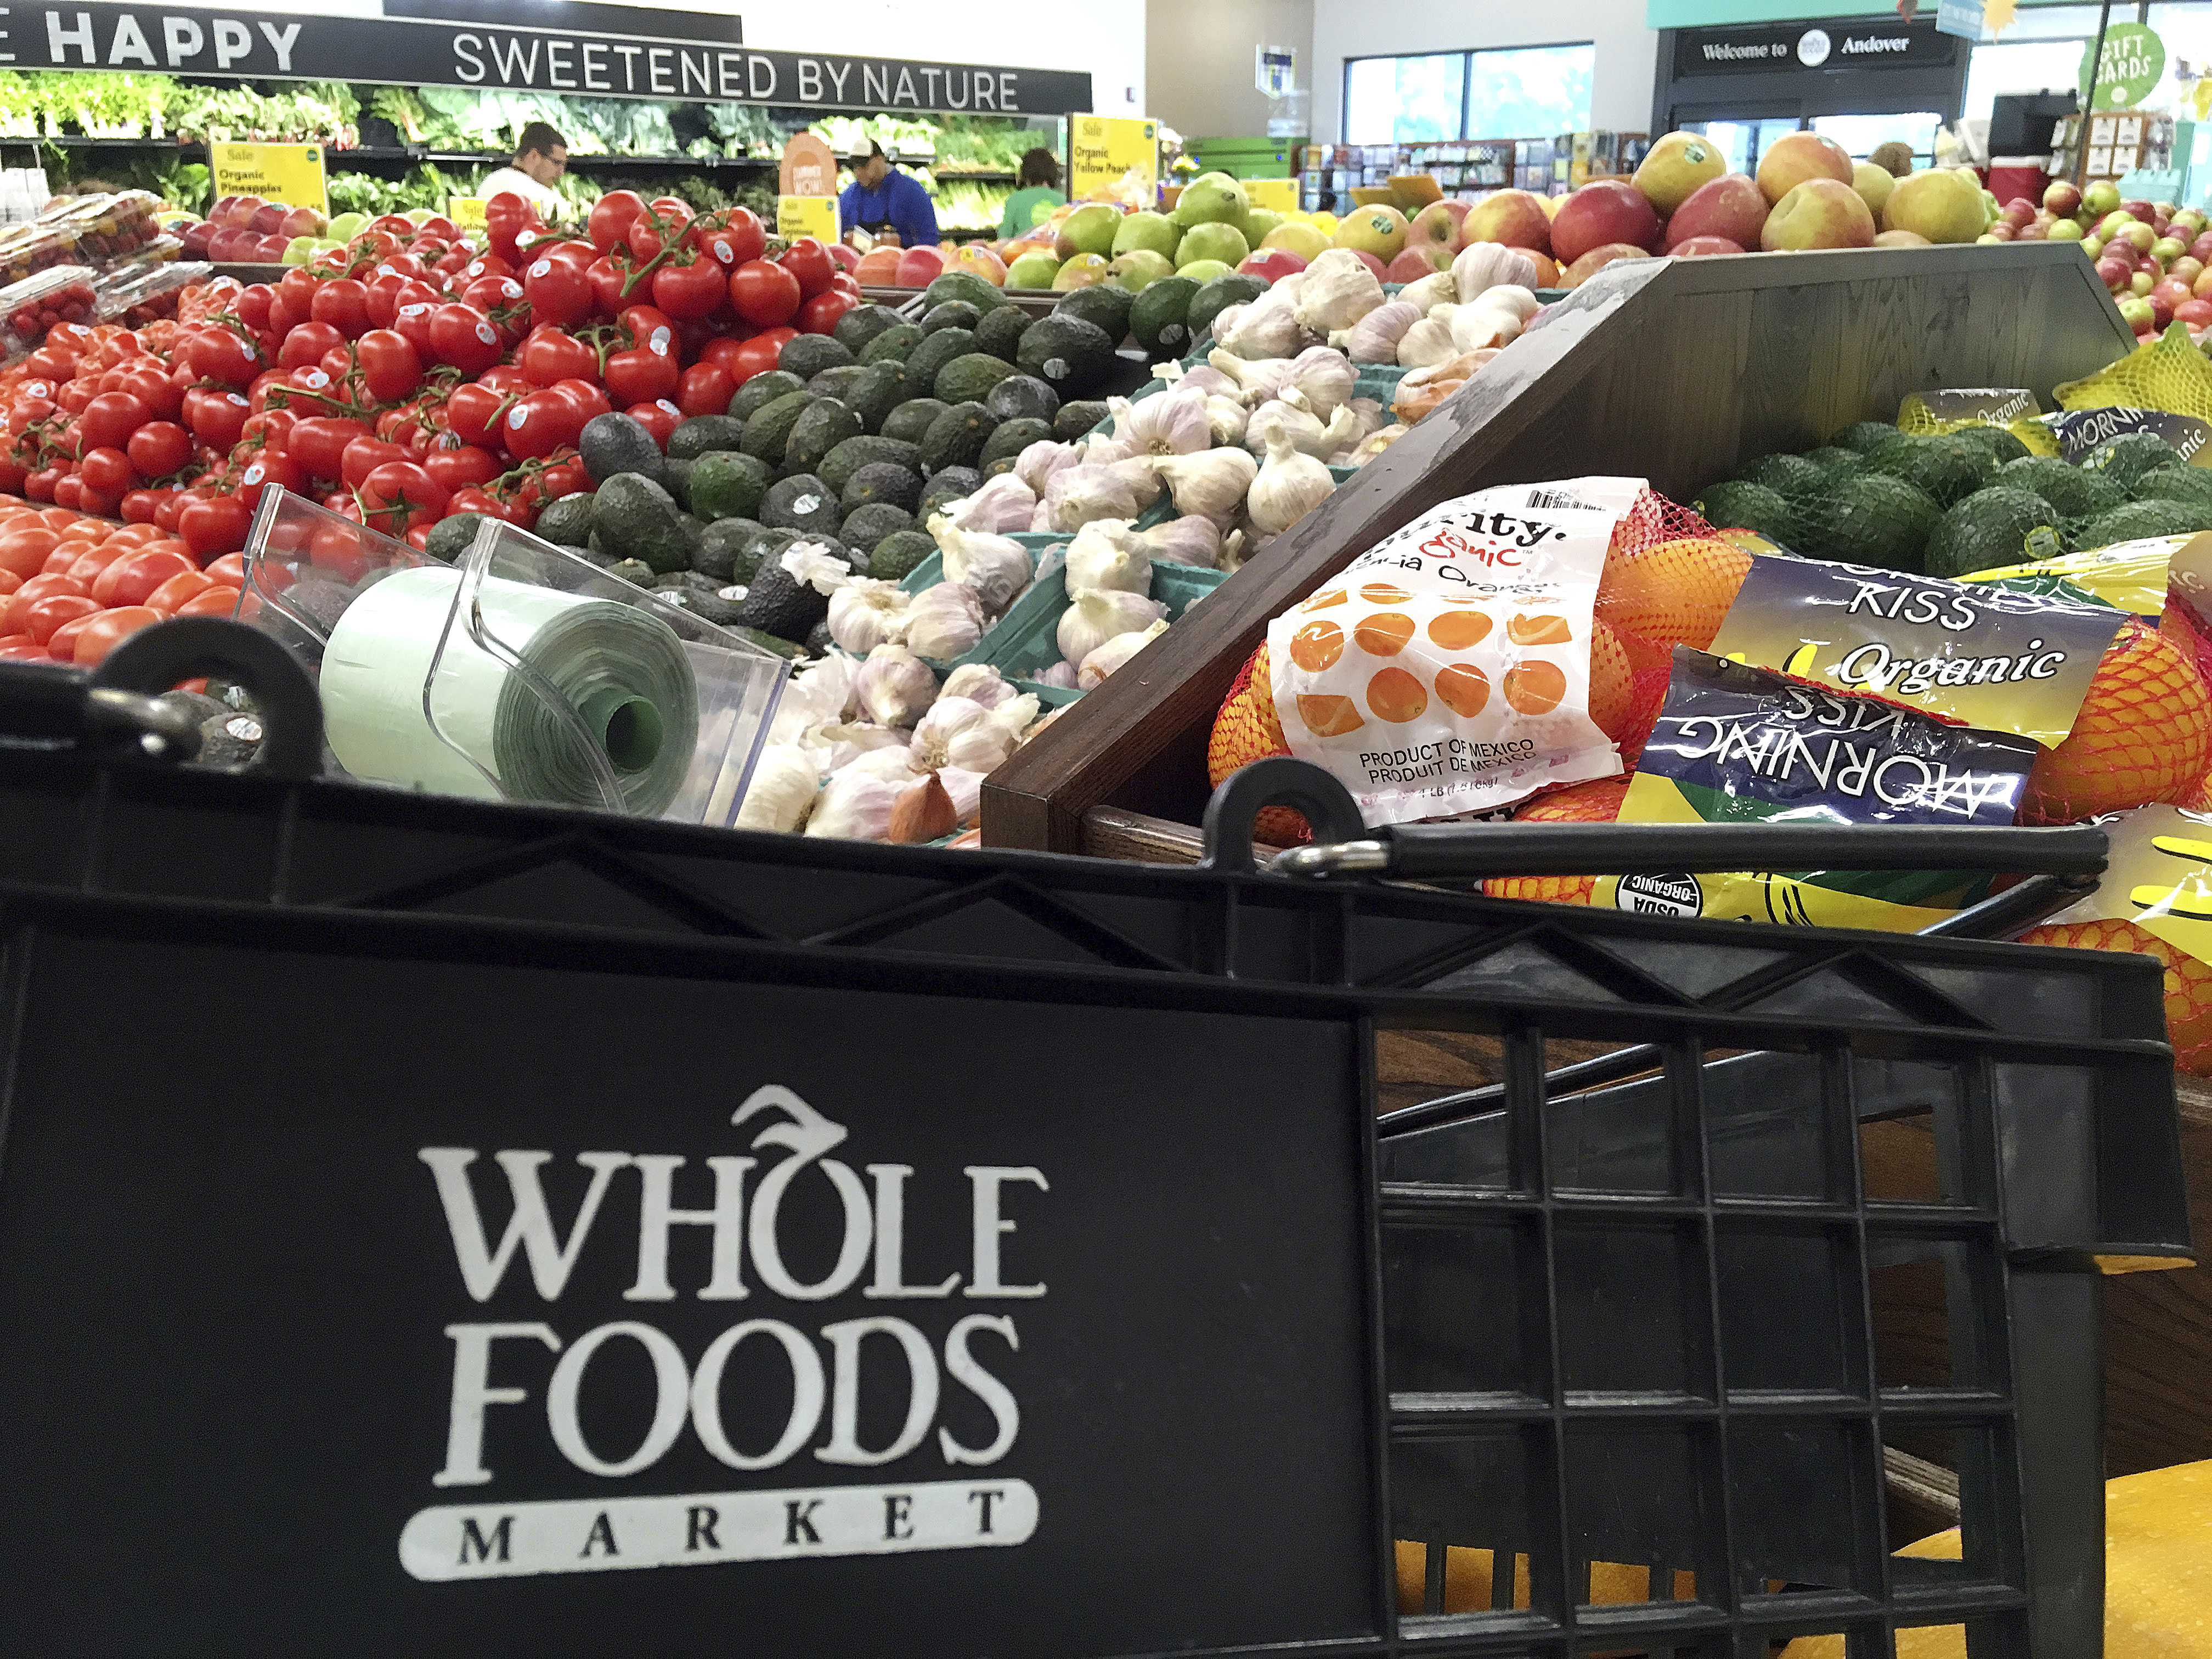 A New Platform for Whole Foods? How Deal Could Upend Grocery